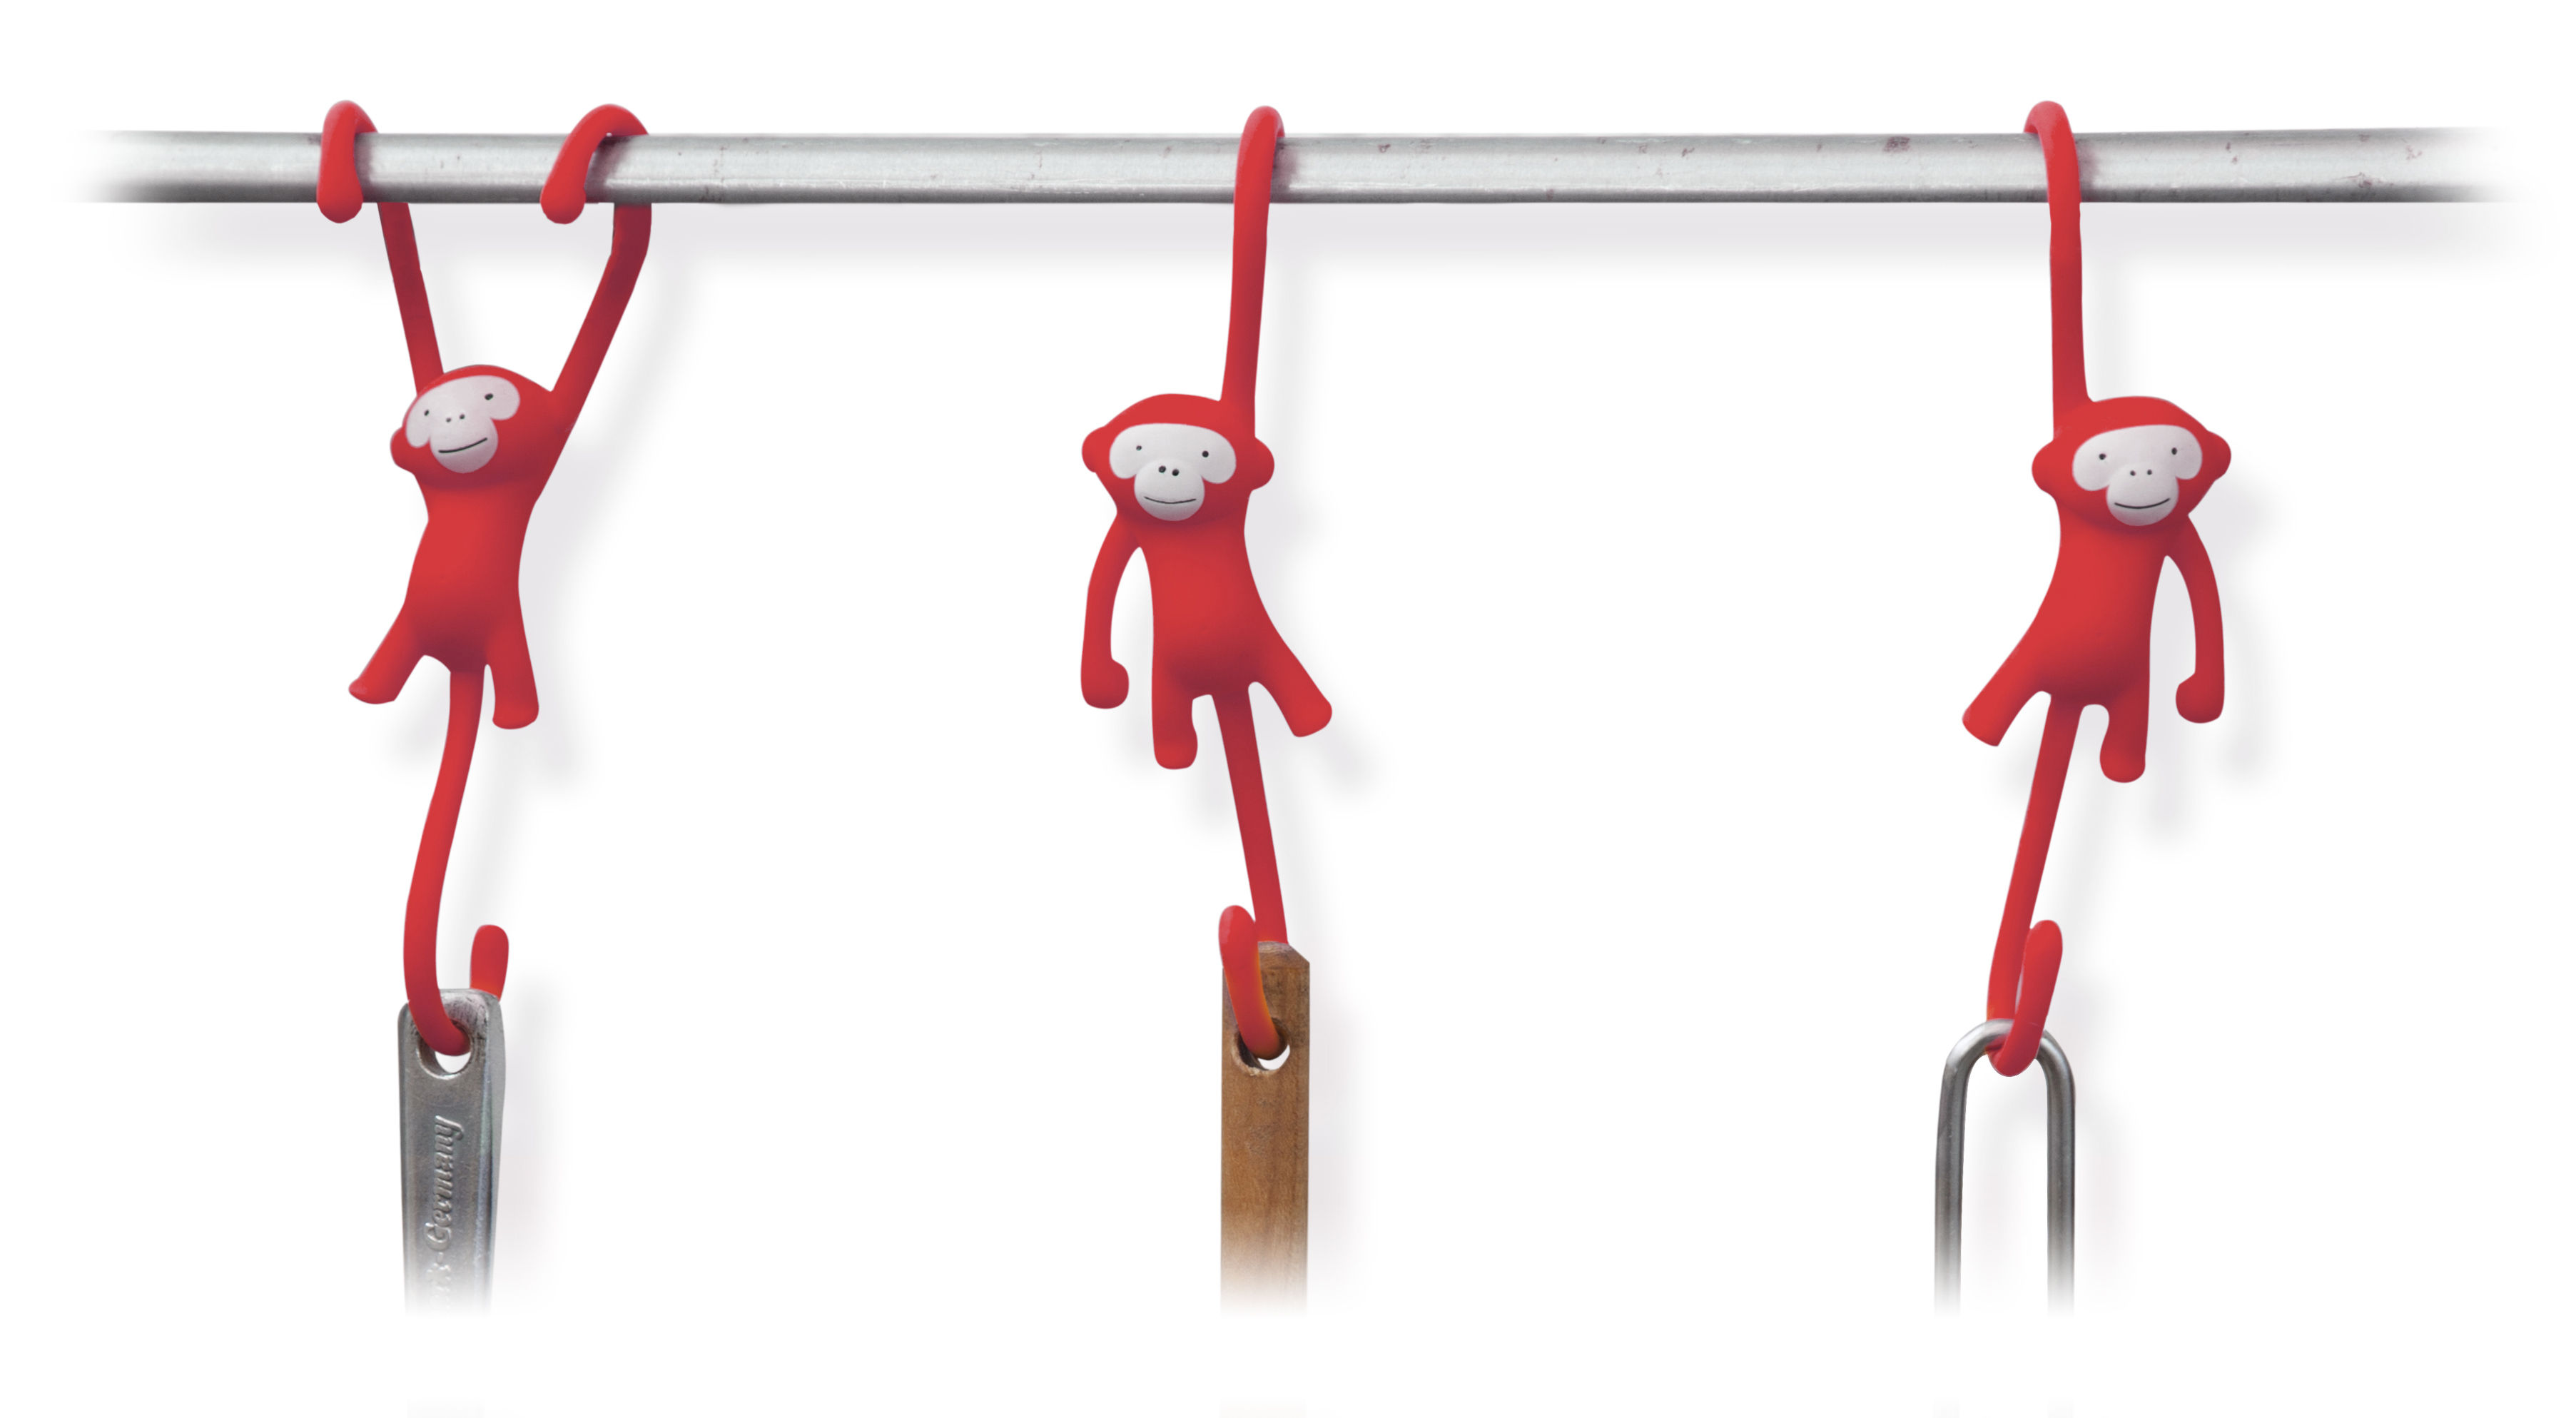 Accessories - Bathroom Accessories - Just hanging Hook - Set of 3 by Pa Design - Red - Plastic material